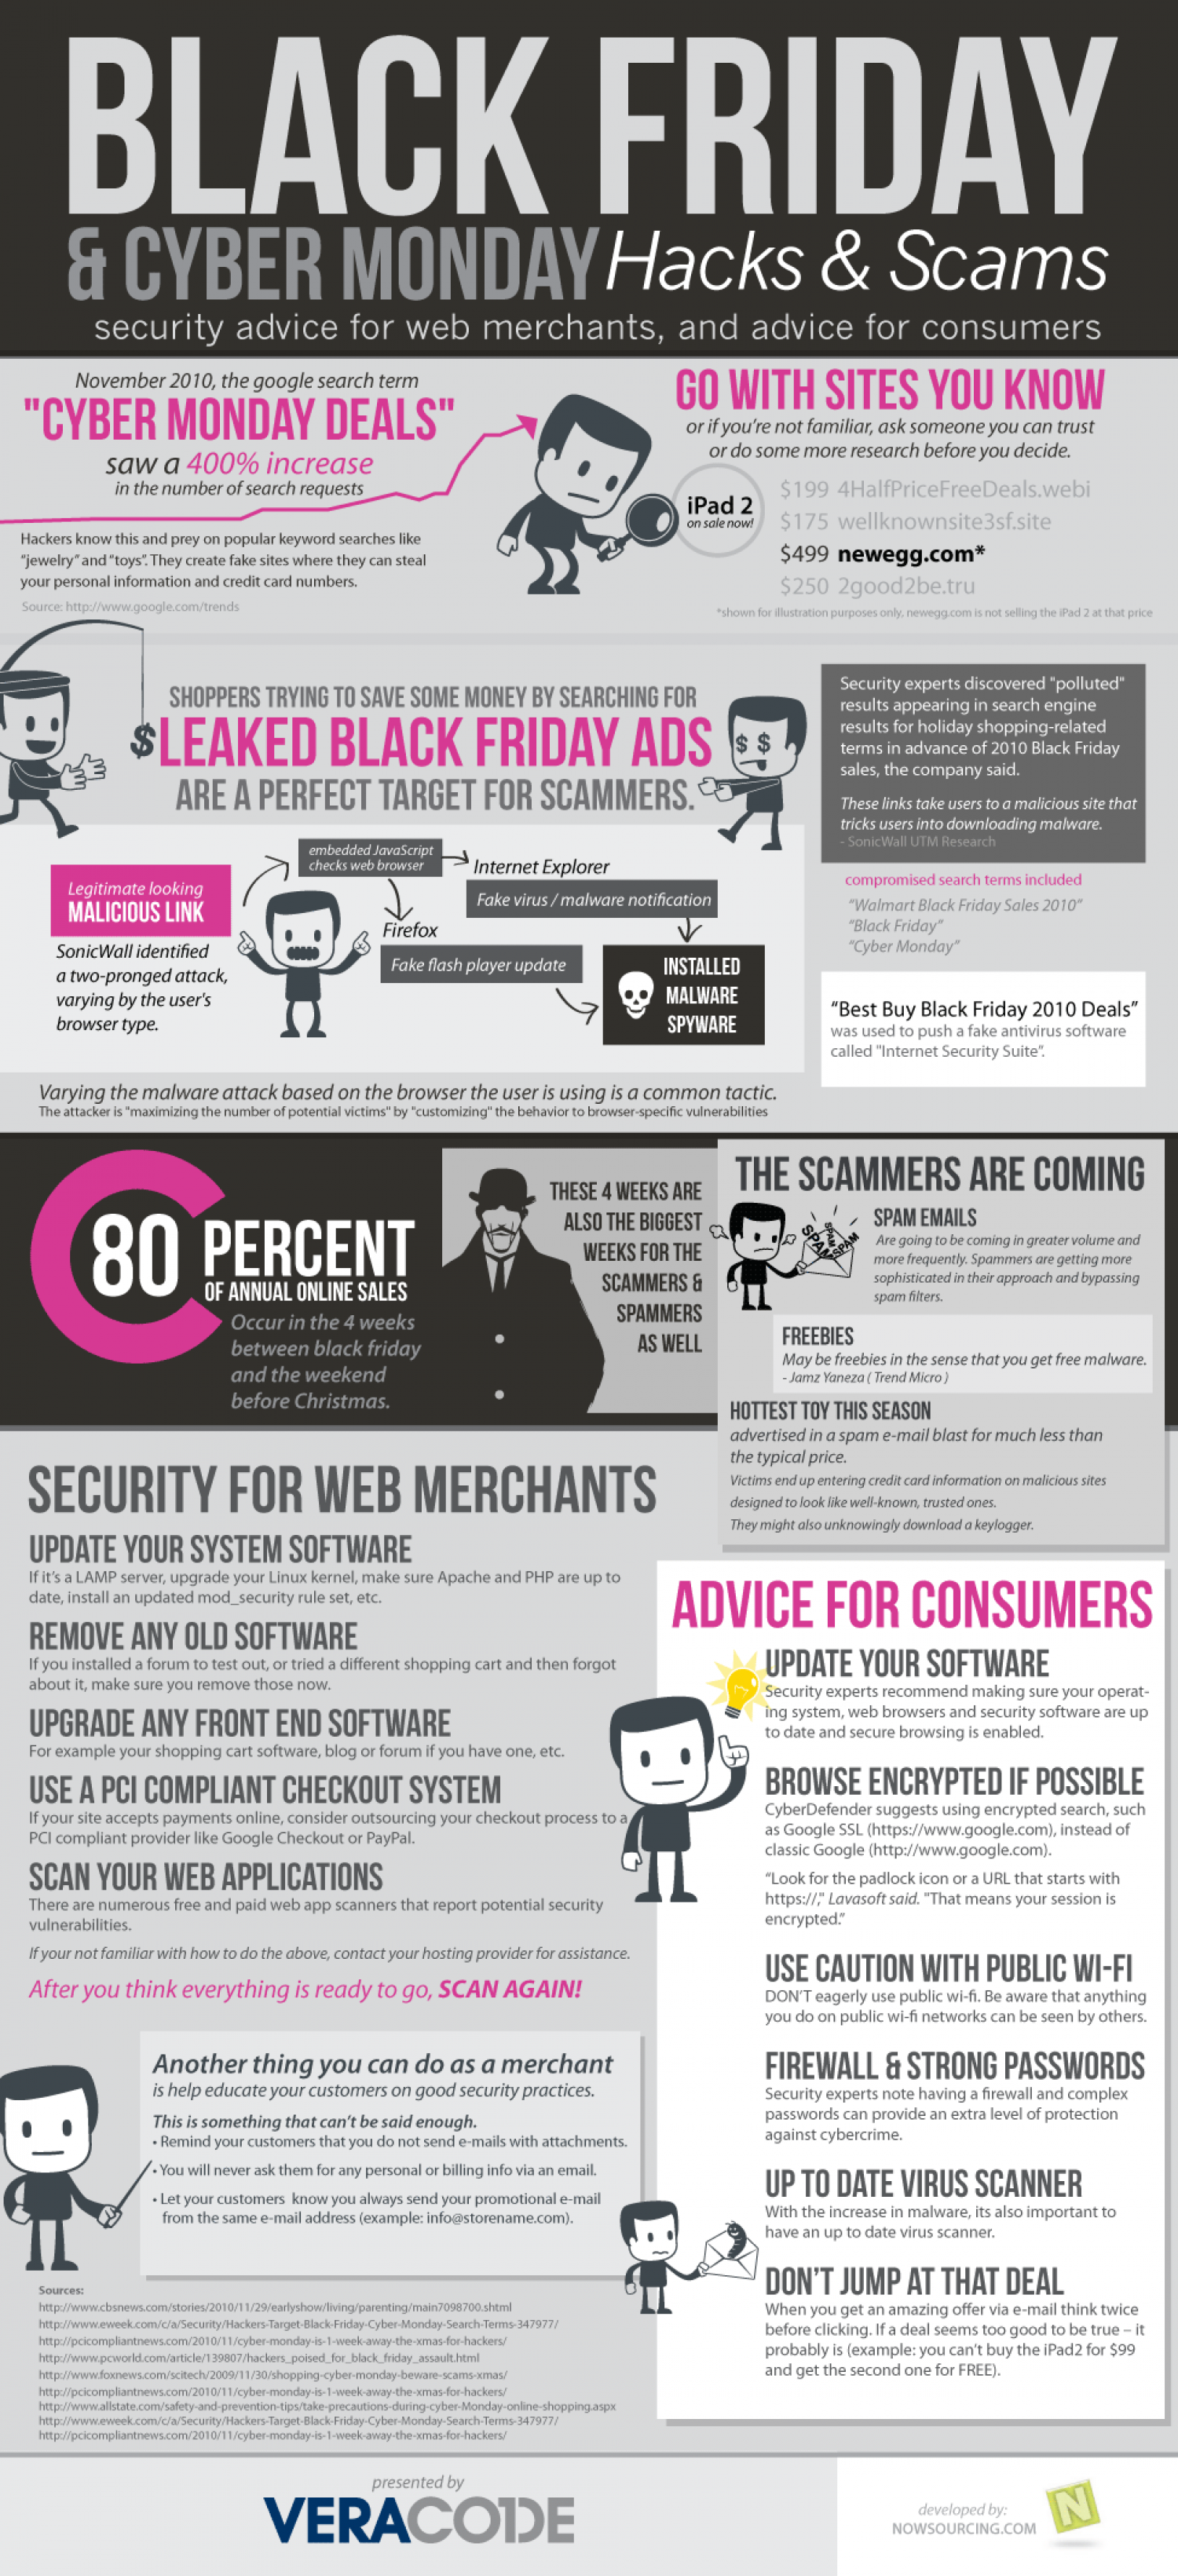 Black Friday and Cyber Monday: Hacks and Scams  Infographic